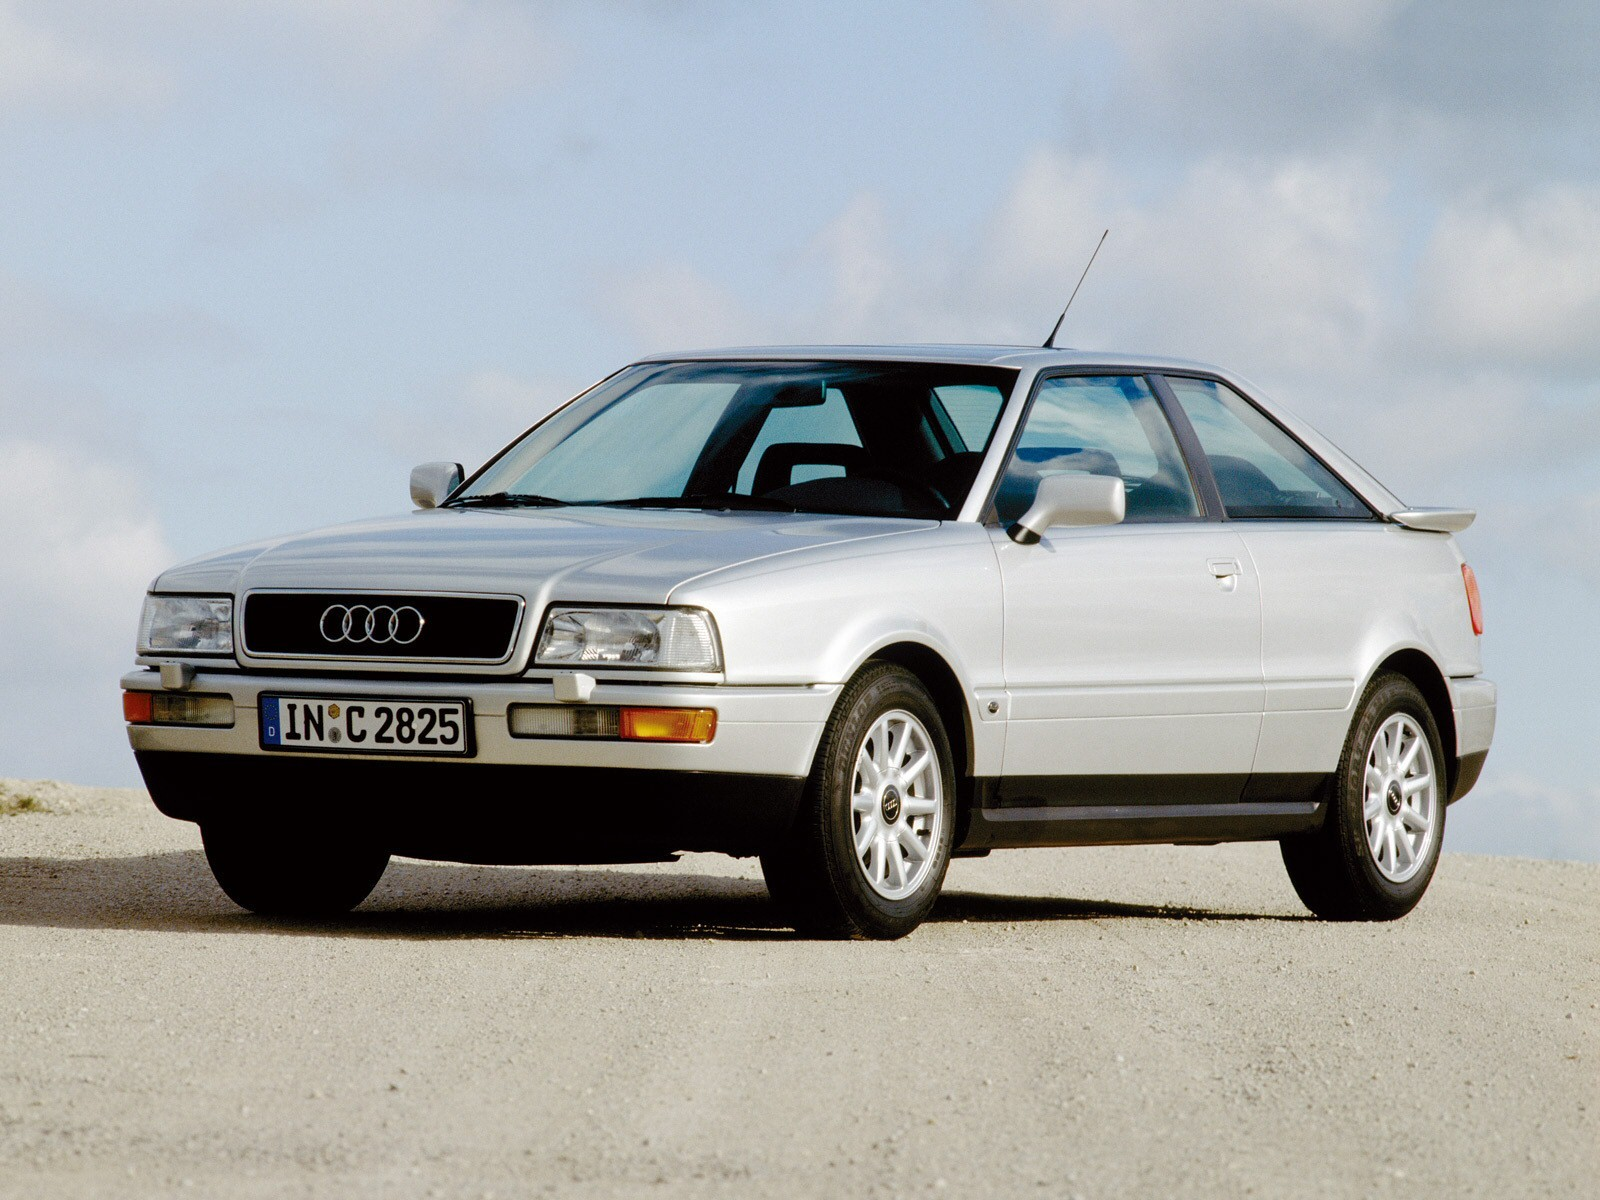 Audi Coupe II (B3) Restyling 1991 - 1996 Coupe #5